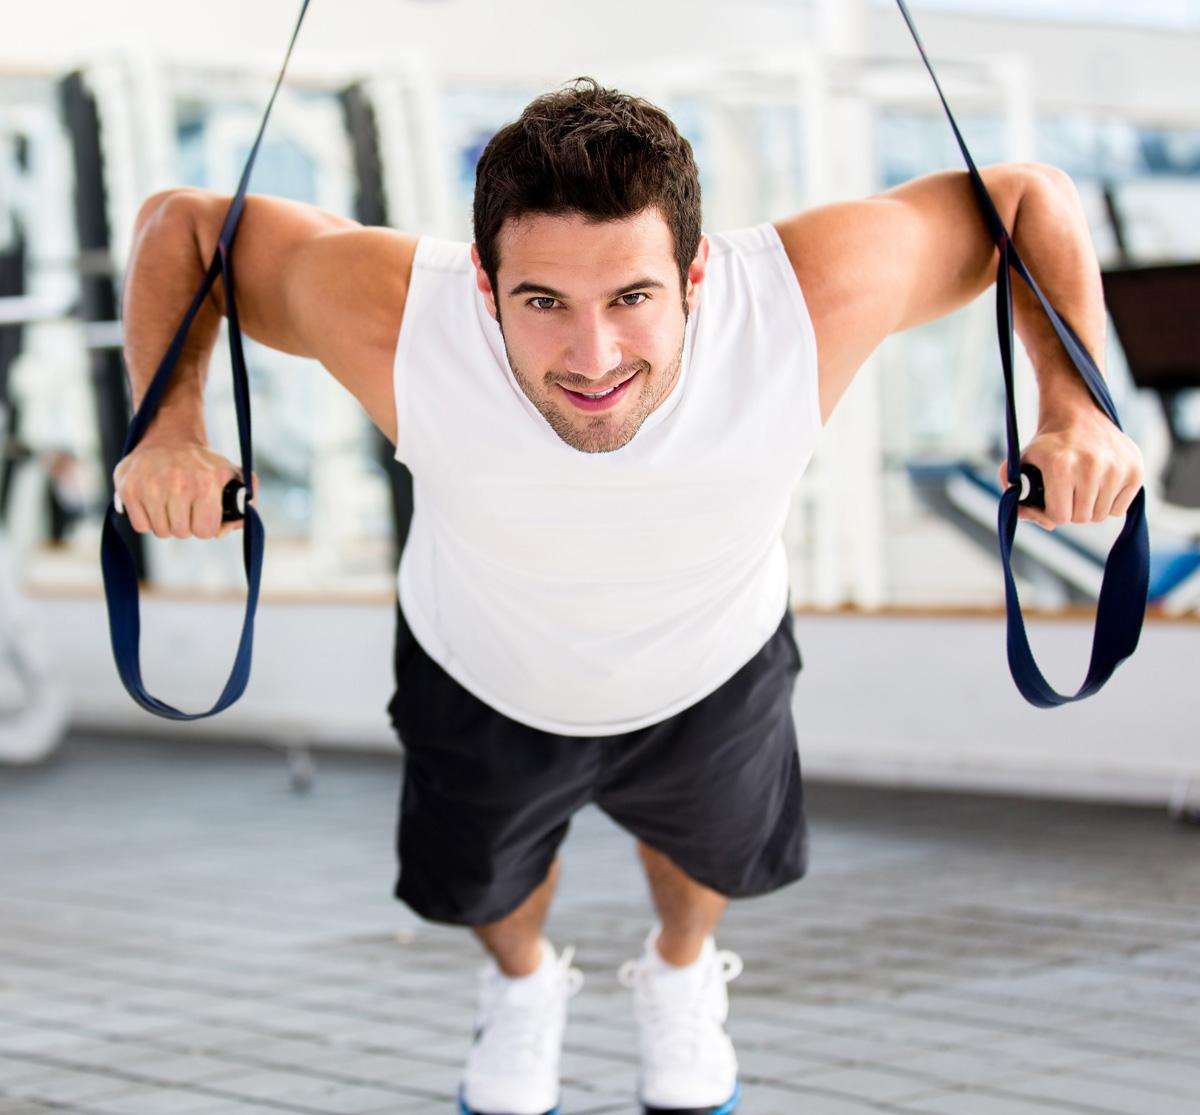 Exercise is more effective than anti